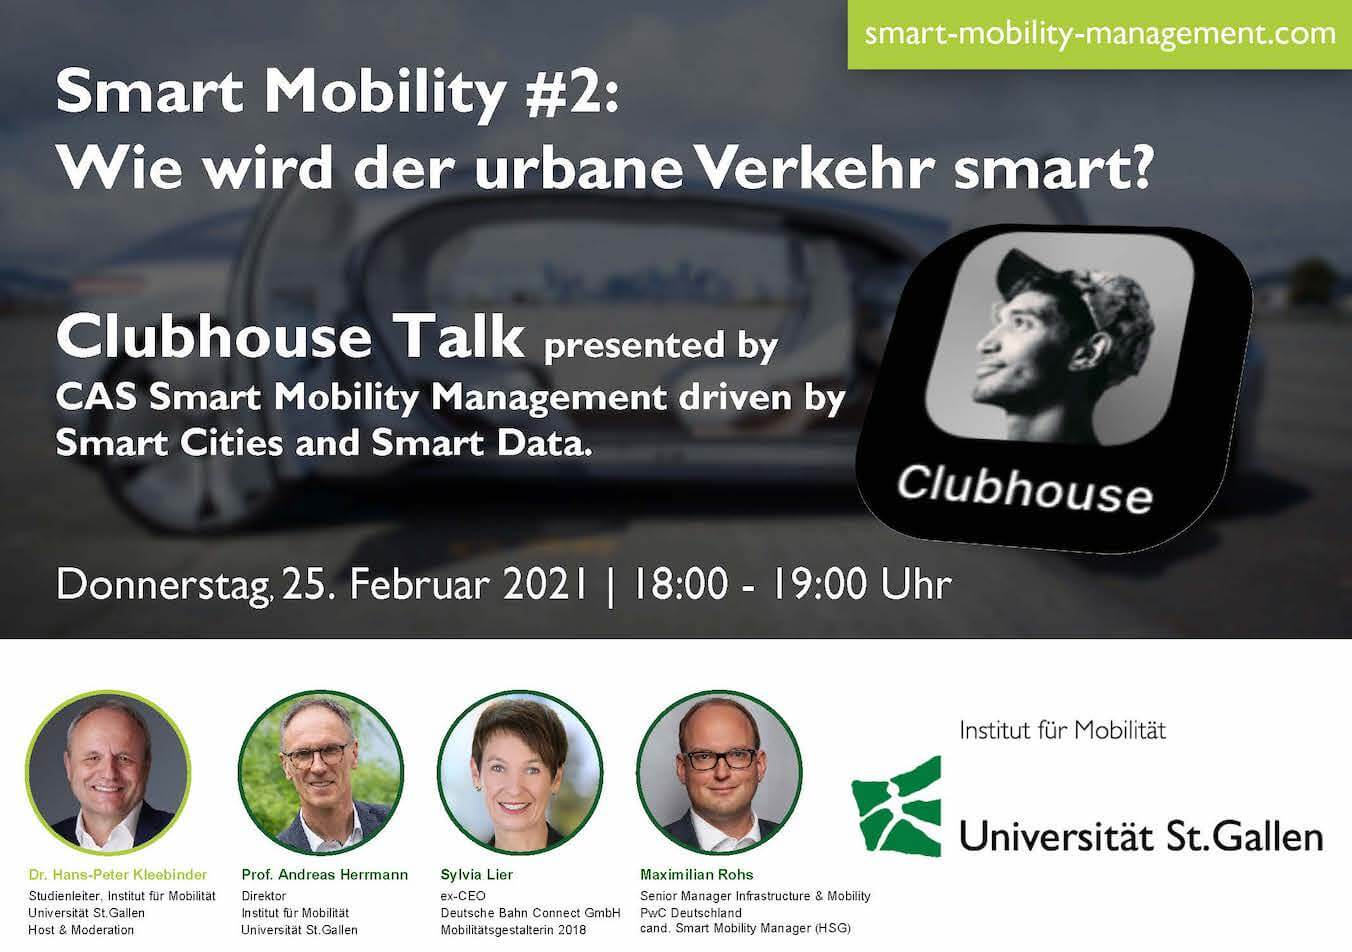 210412_Flyer_Clubhouse_Smart_Mobility_Management[82]_Seite_3